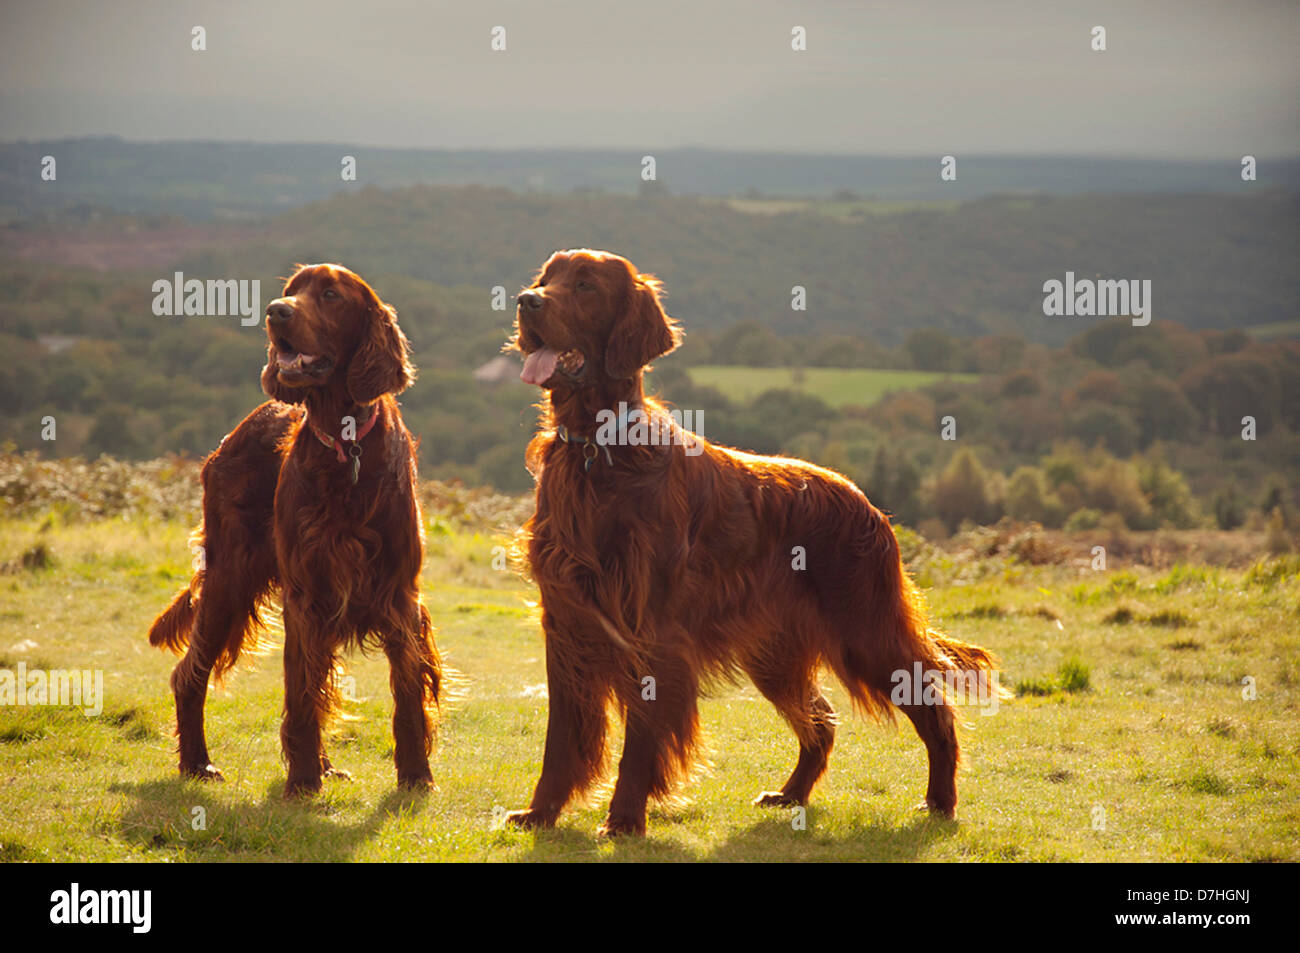 Two red setters on Caerphilly Mountain in a patch of golden sunlight, with dark clouds in the distance. - Stock Image